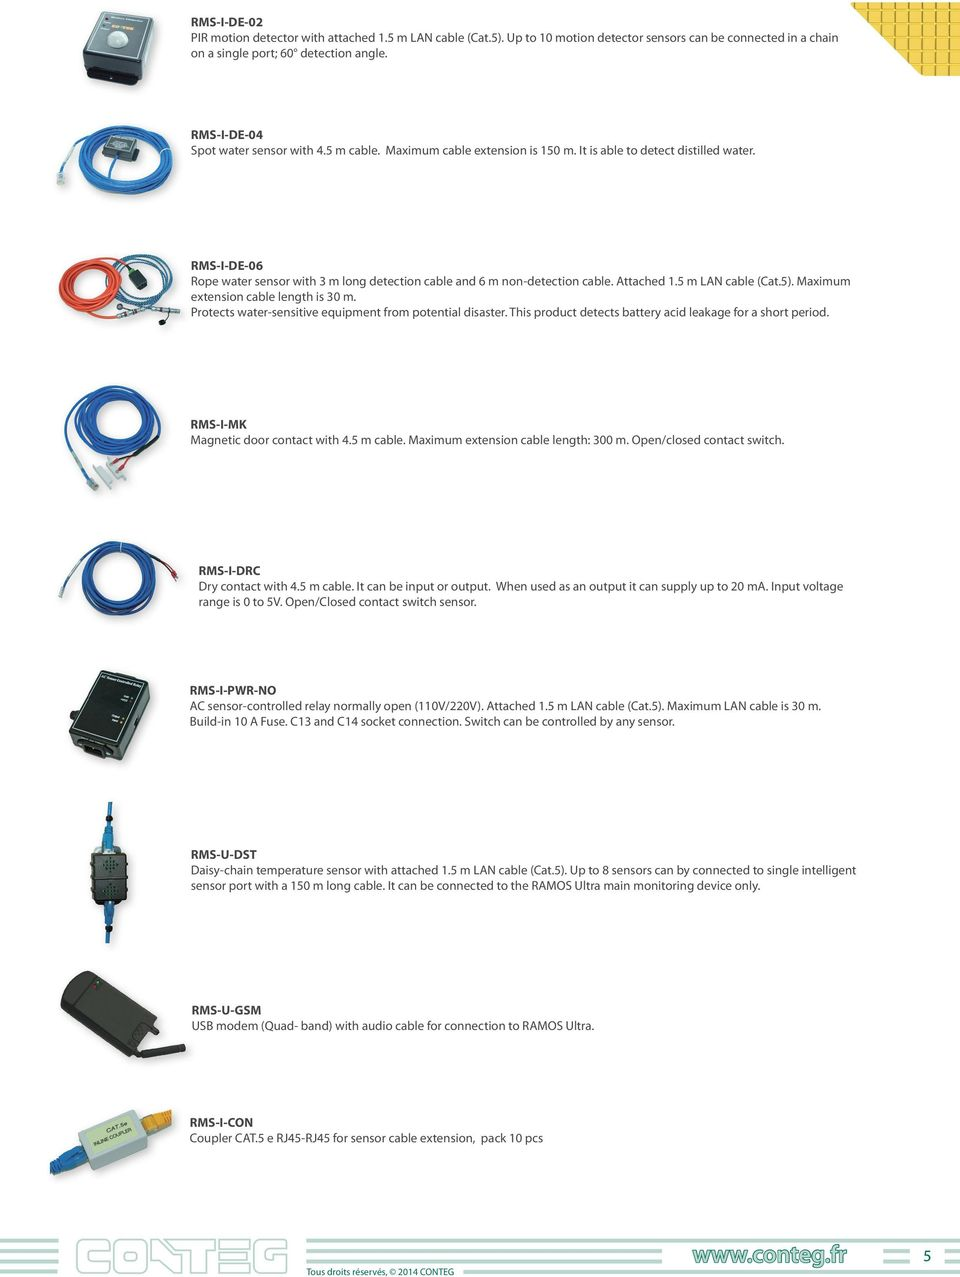 RMS-I-DE-06 Rope water sensor with 3 m long detection cable and 6 m non-detection cable. Attached.5 m LAN cable (Cat.5). Maximum extension cable length is 30 m.